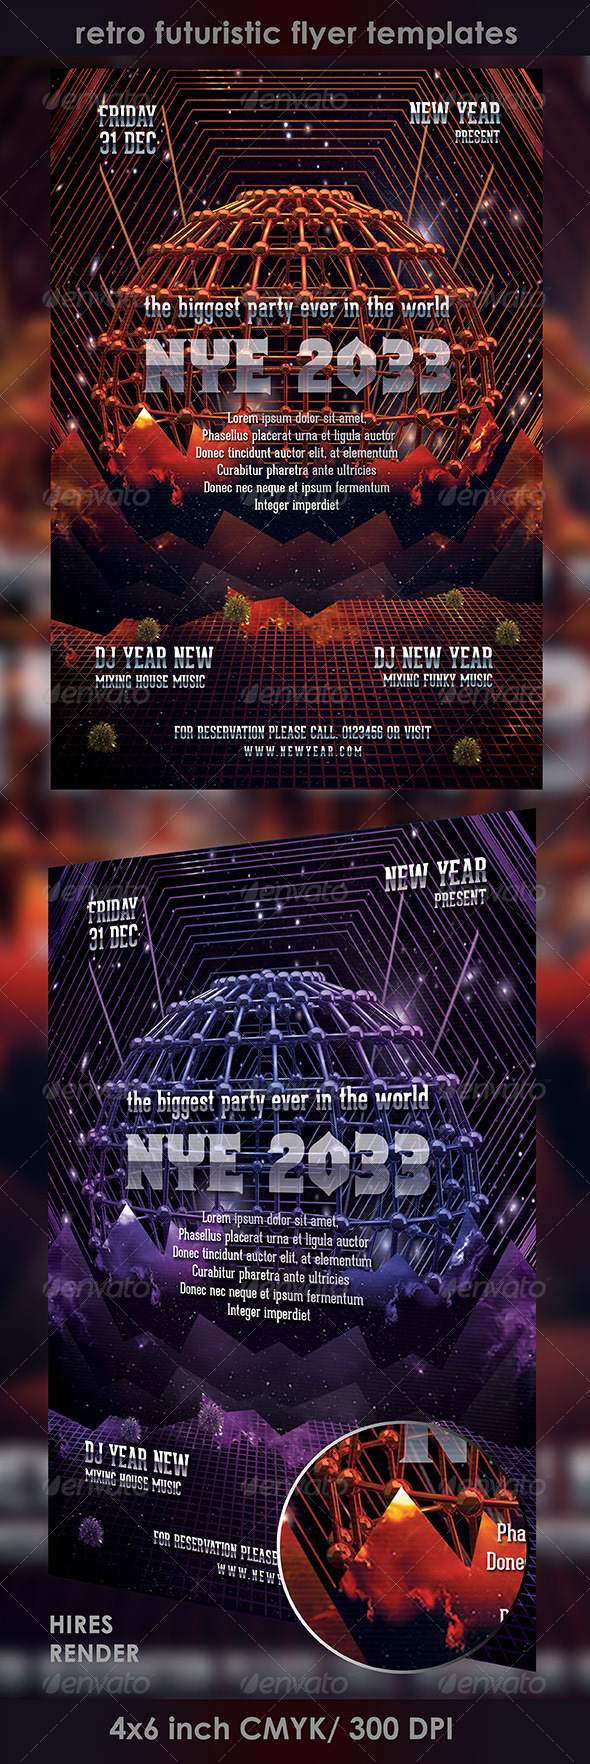 GraphicRiver Nye 2013 Retro Futuristic Flyer Templates 3501928